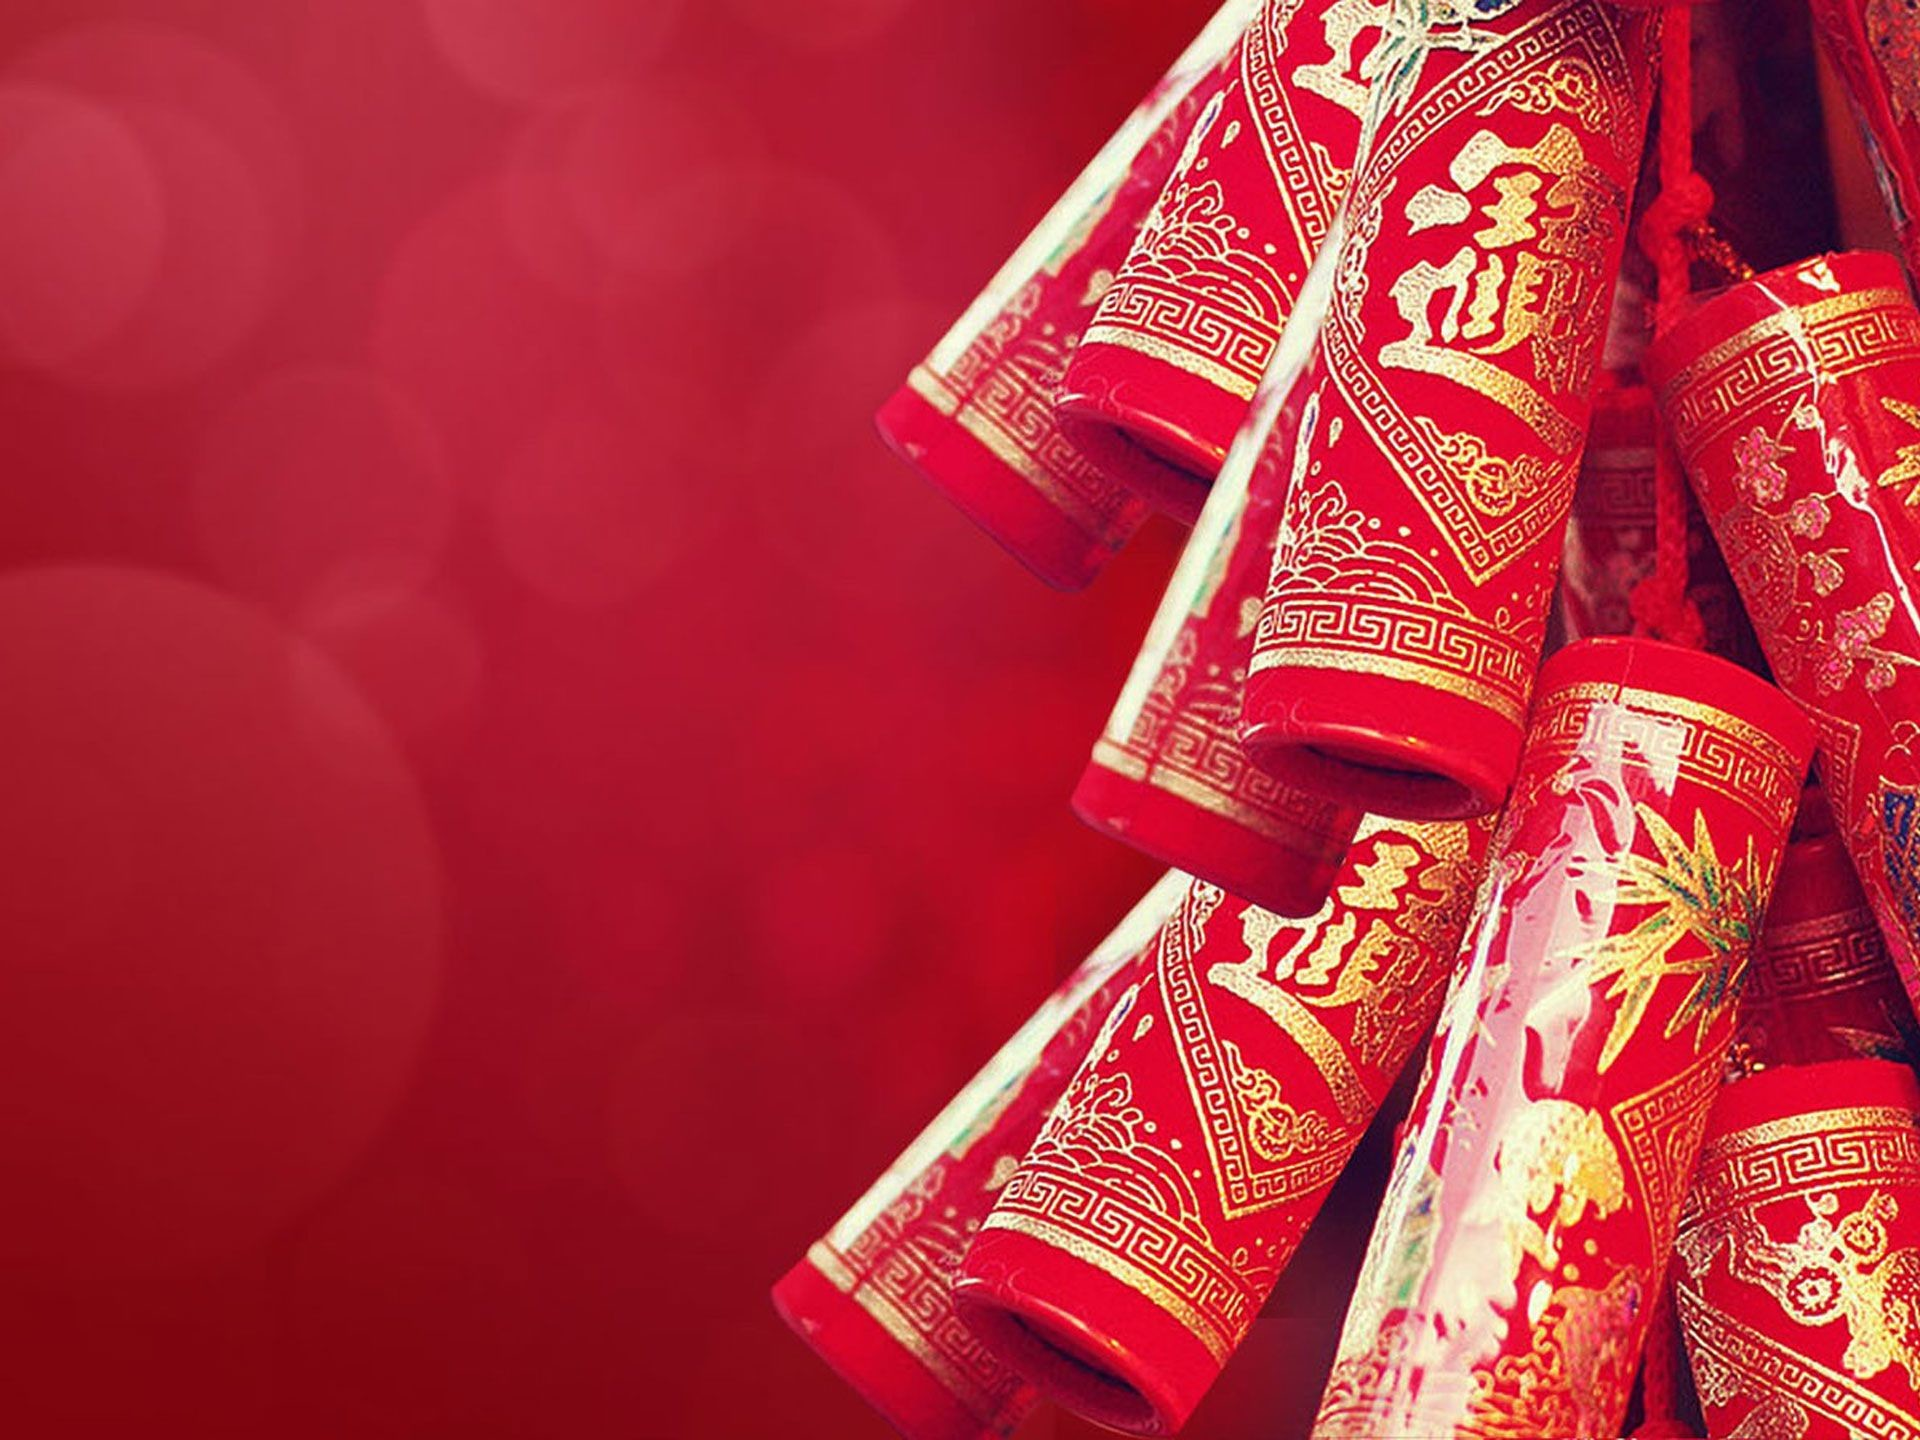 1920x1440 Chinese New Year 2014 Background